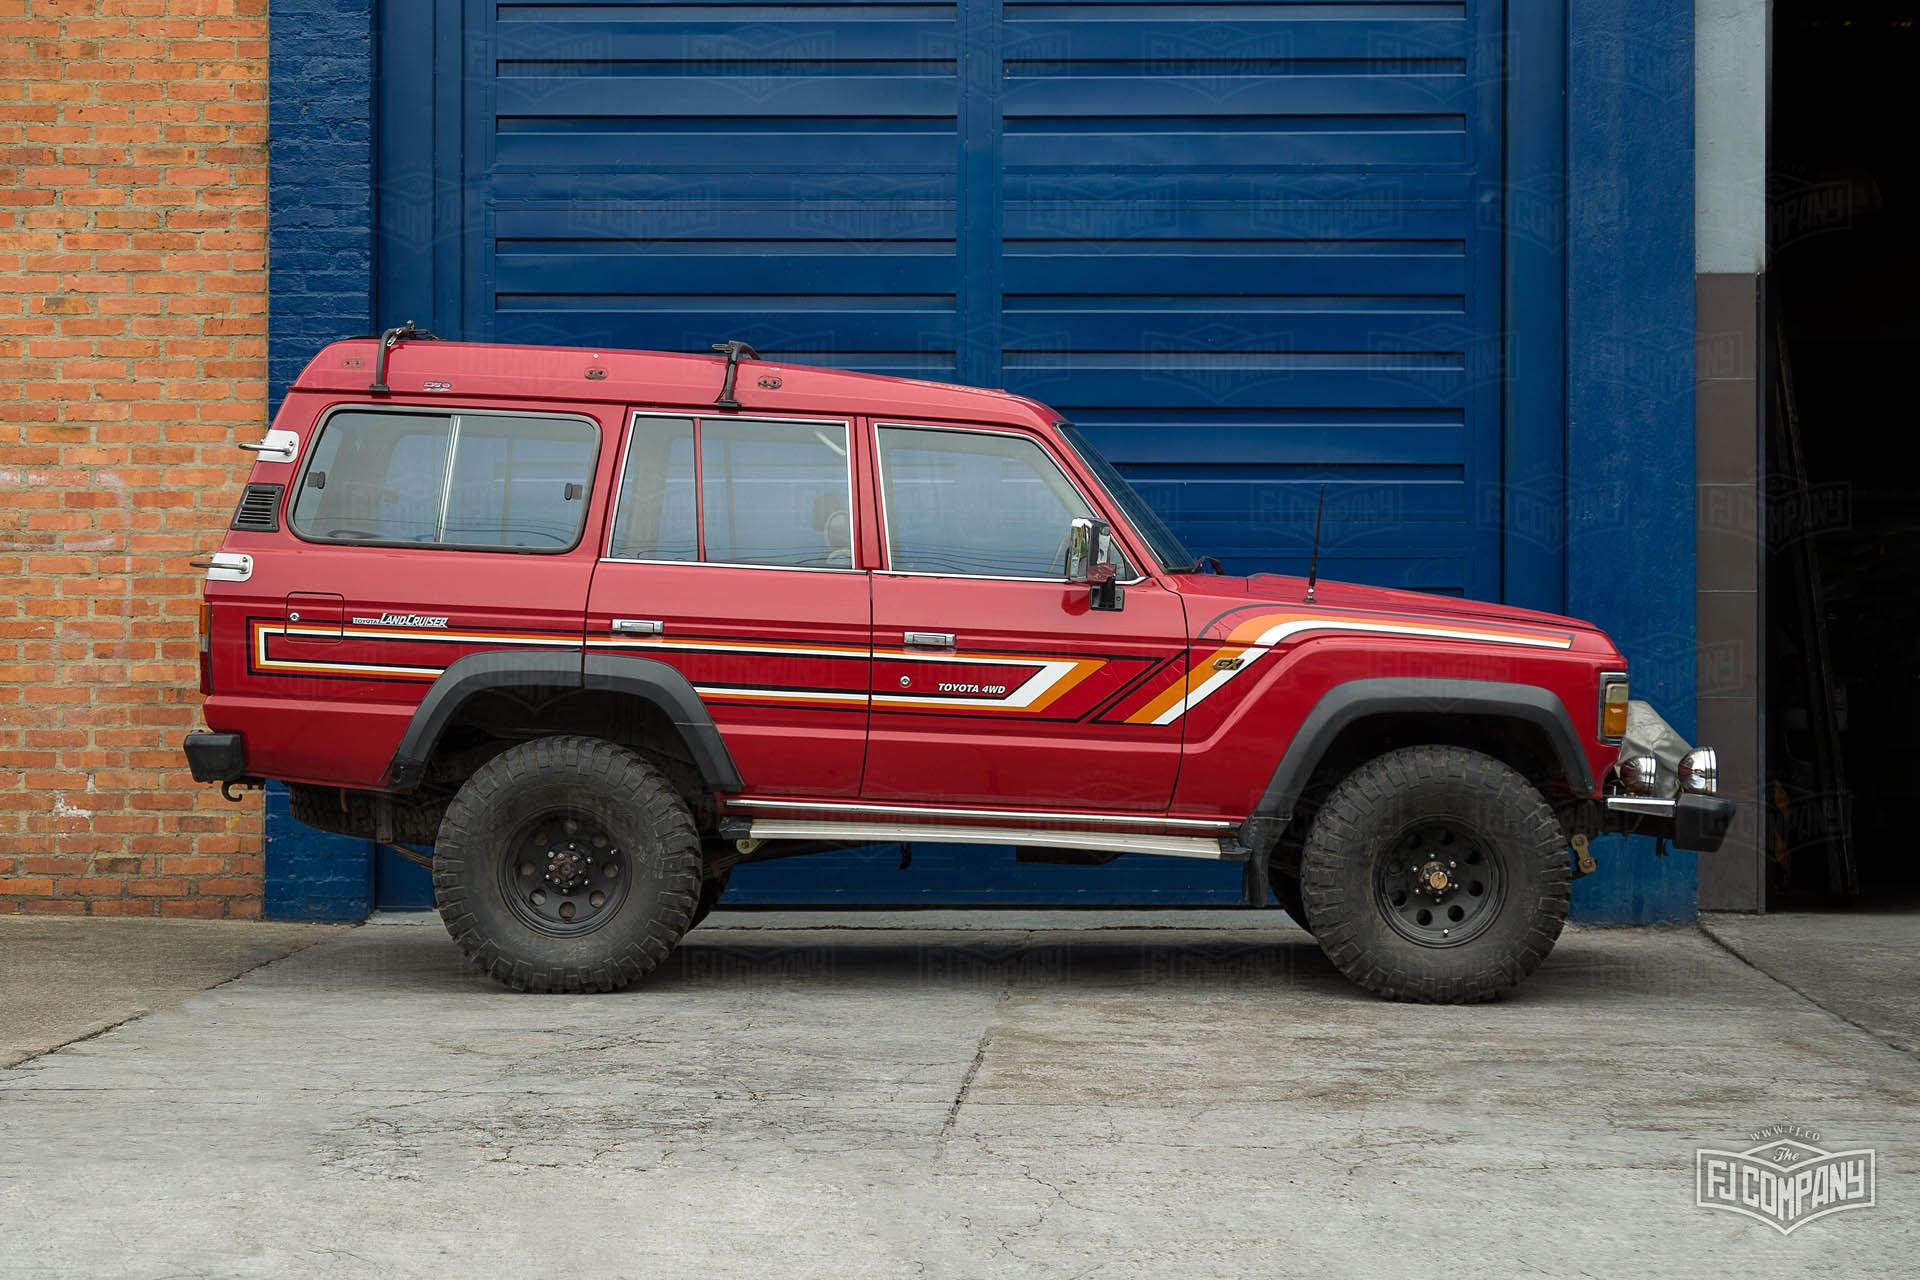 Toyota-Land-Cruiser-FJ62-restomod